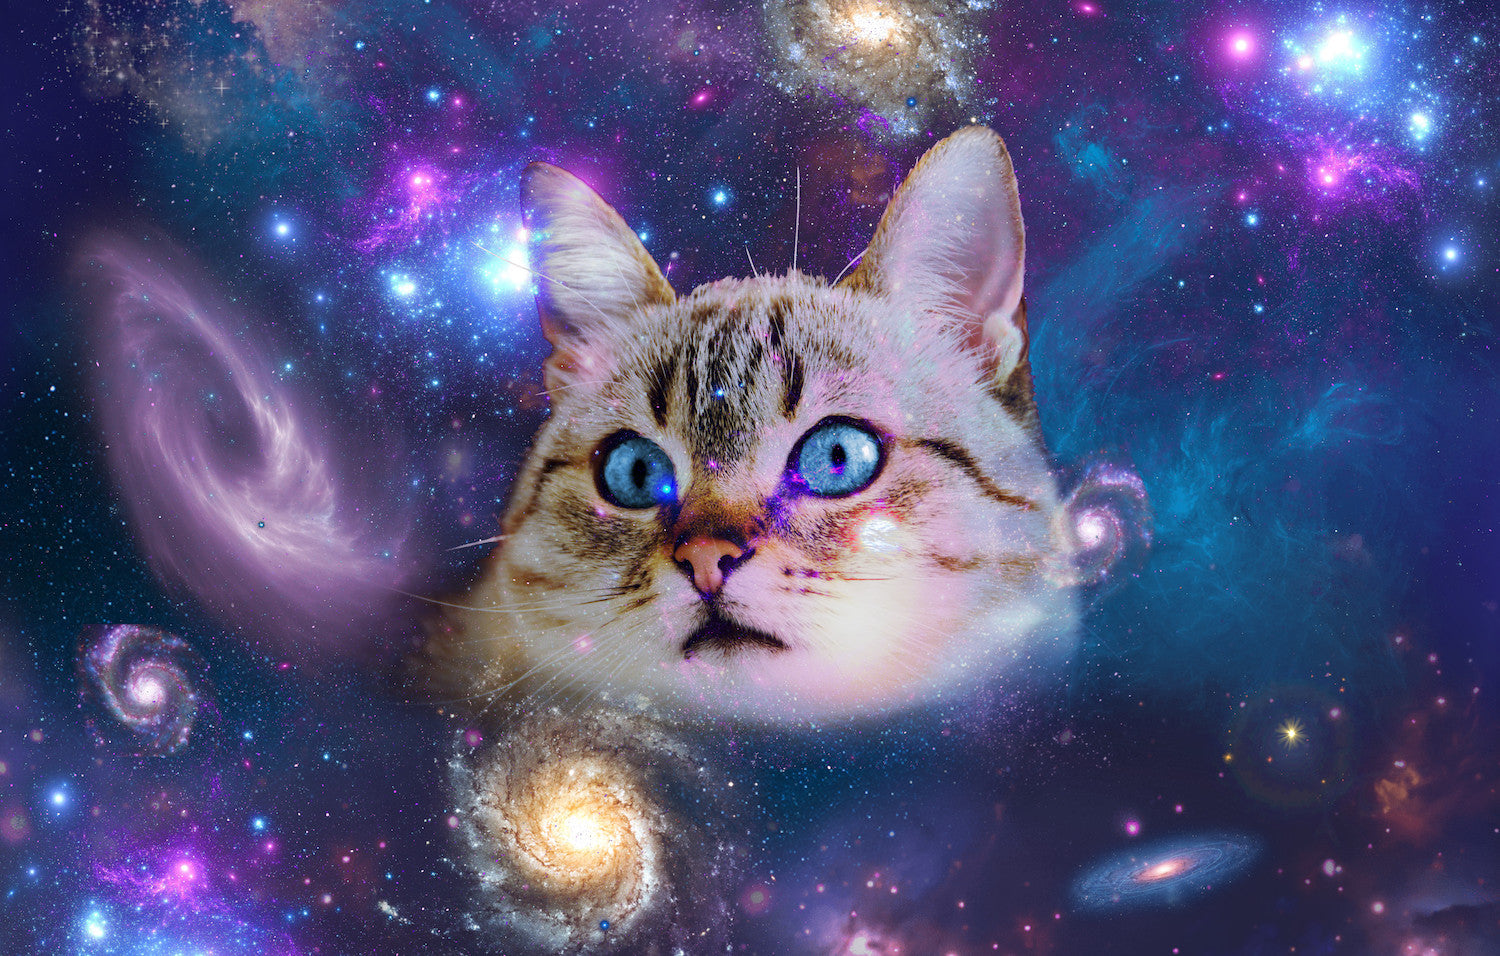 Universe Cat with galaxy print